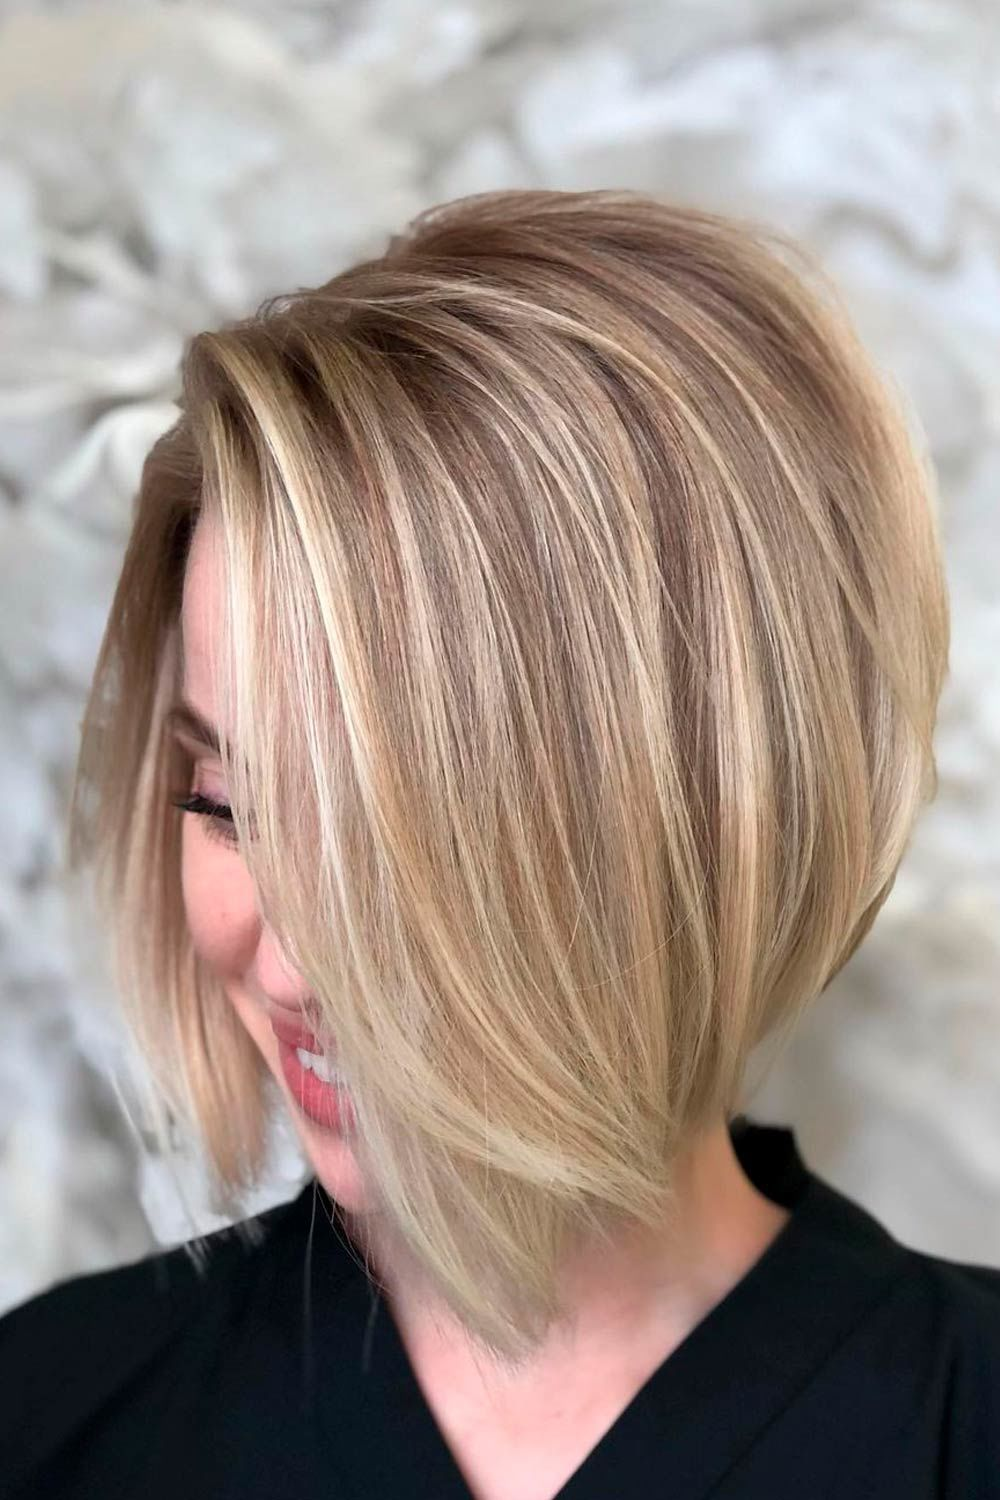 Short To Medium Hairstyles For Round Face Shape, short edgy hairstyles for women with round faces, short choppy hairstyles for round faces, short hairstyles for older round faces